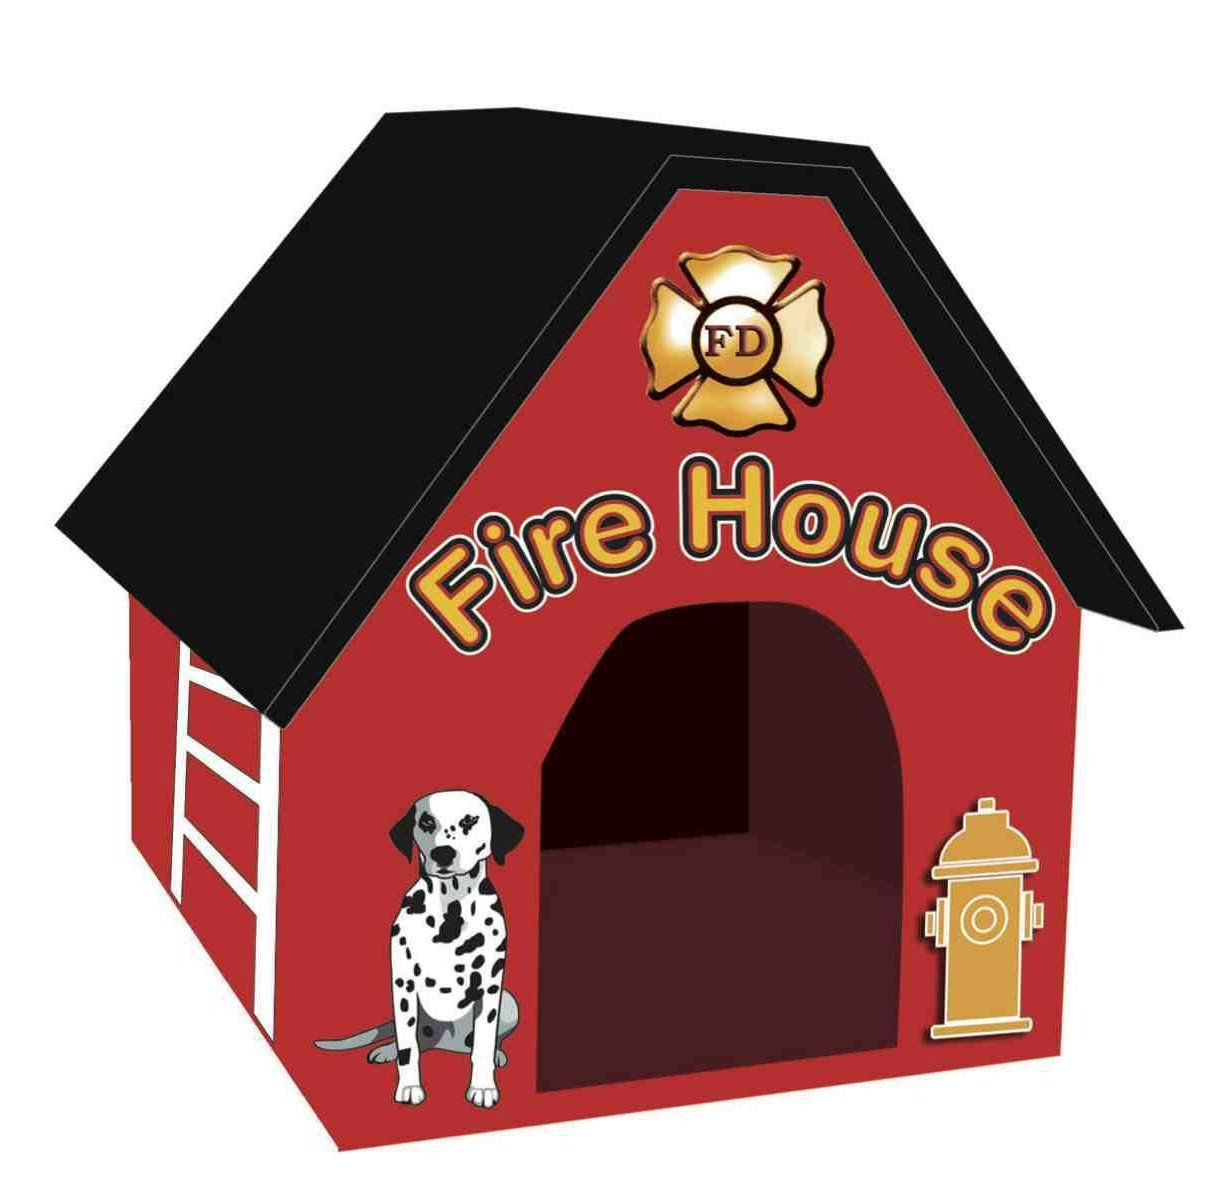 Portable Firehouse Dog House New And Awesome Dog Product